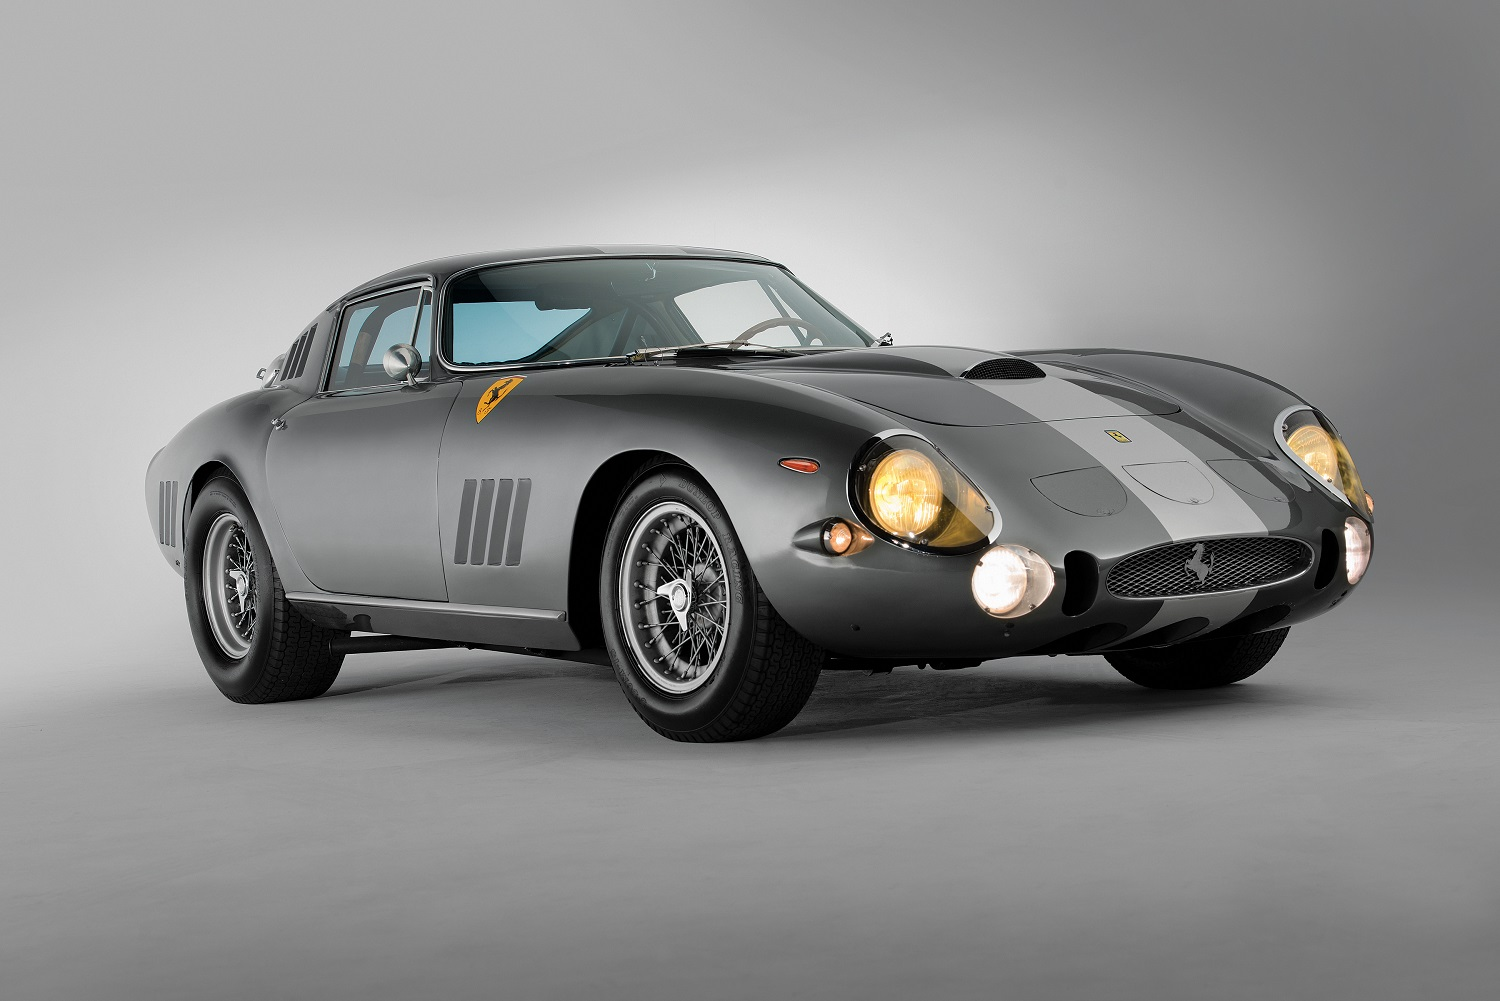 Monterey Sale To Move To RM Sotheby's Online Only Platform